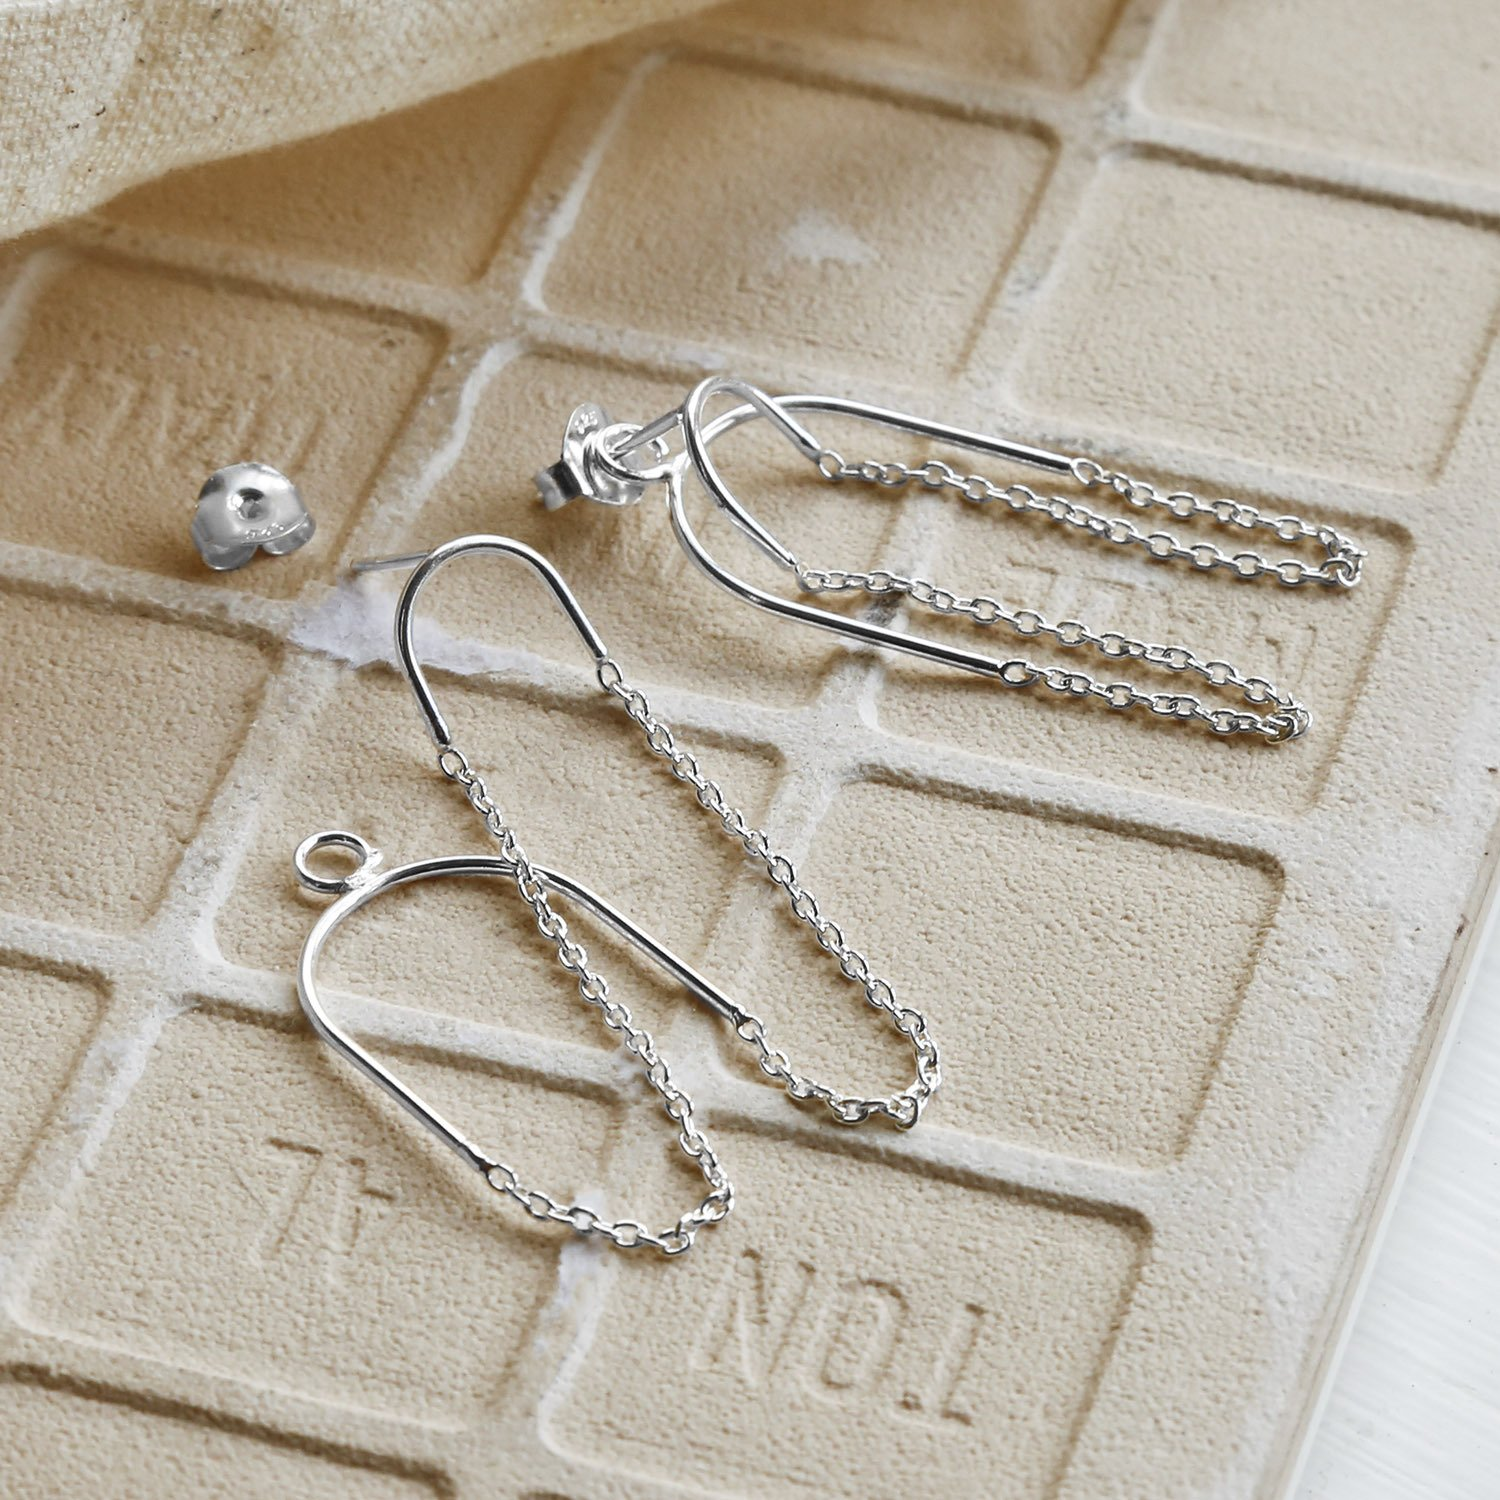 Two way chain Sterling Silver studs, one earring appearing undone on Sandy tile background with canvas